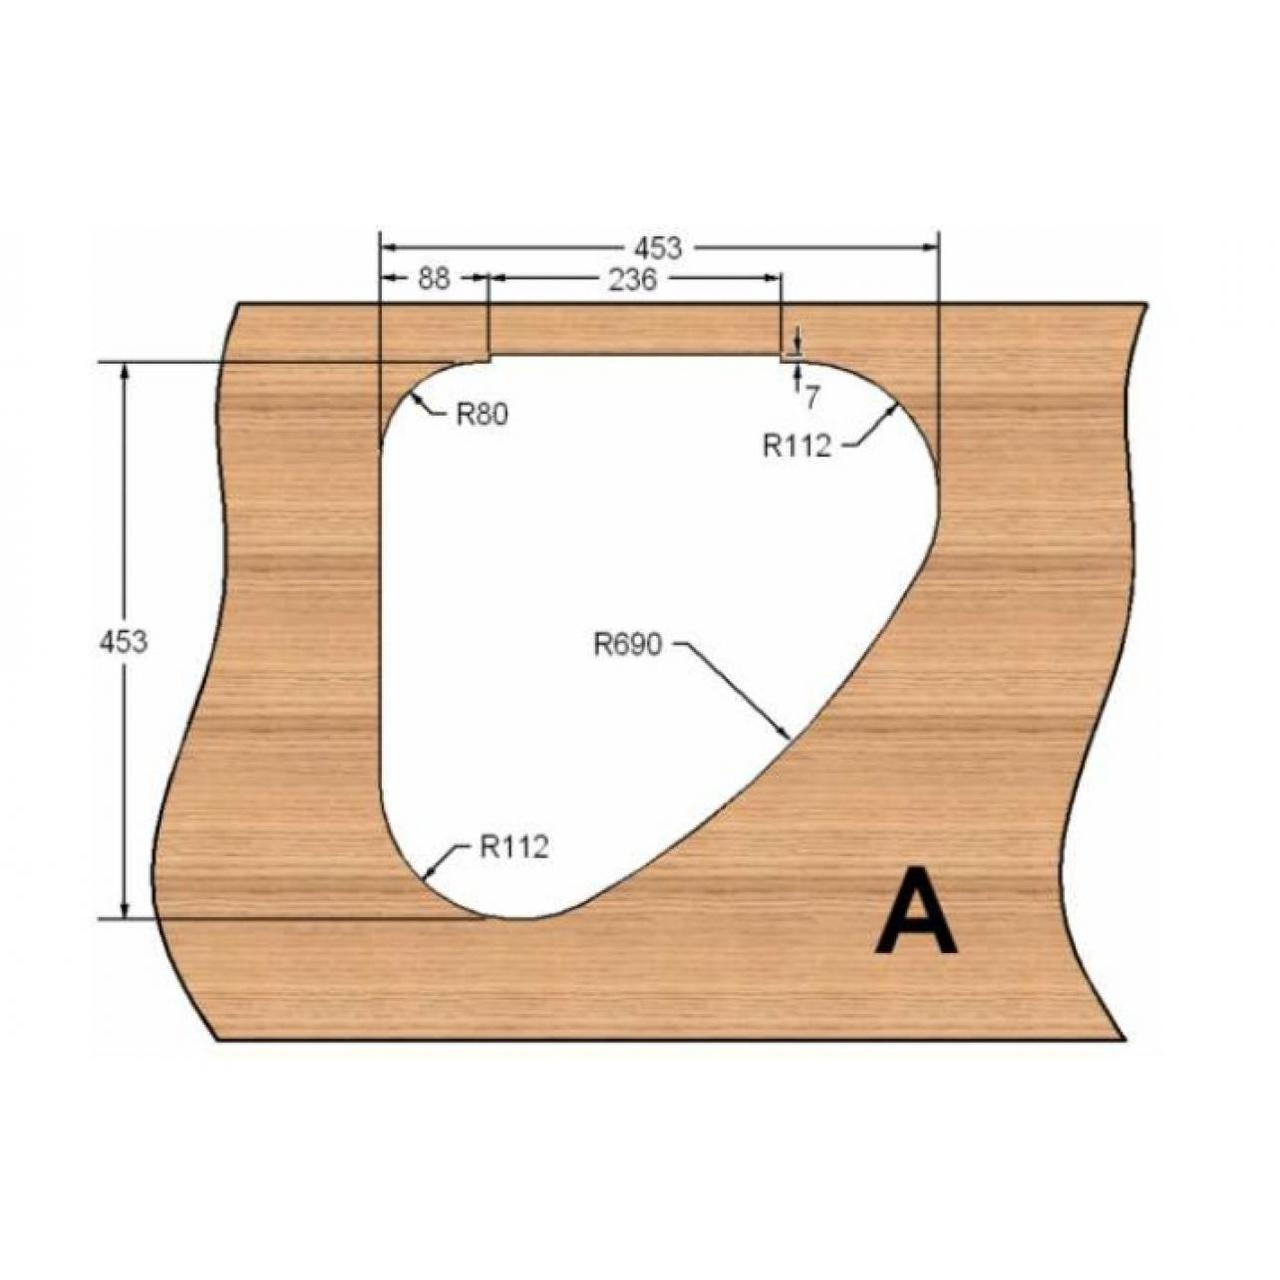 Template: note one hinge cut out shown.  Change on flat side depending on handing. This is an L.